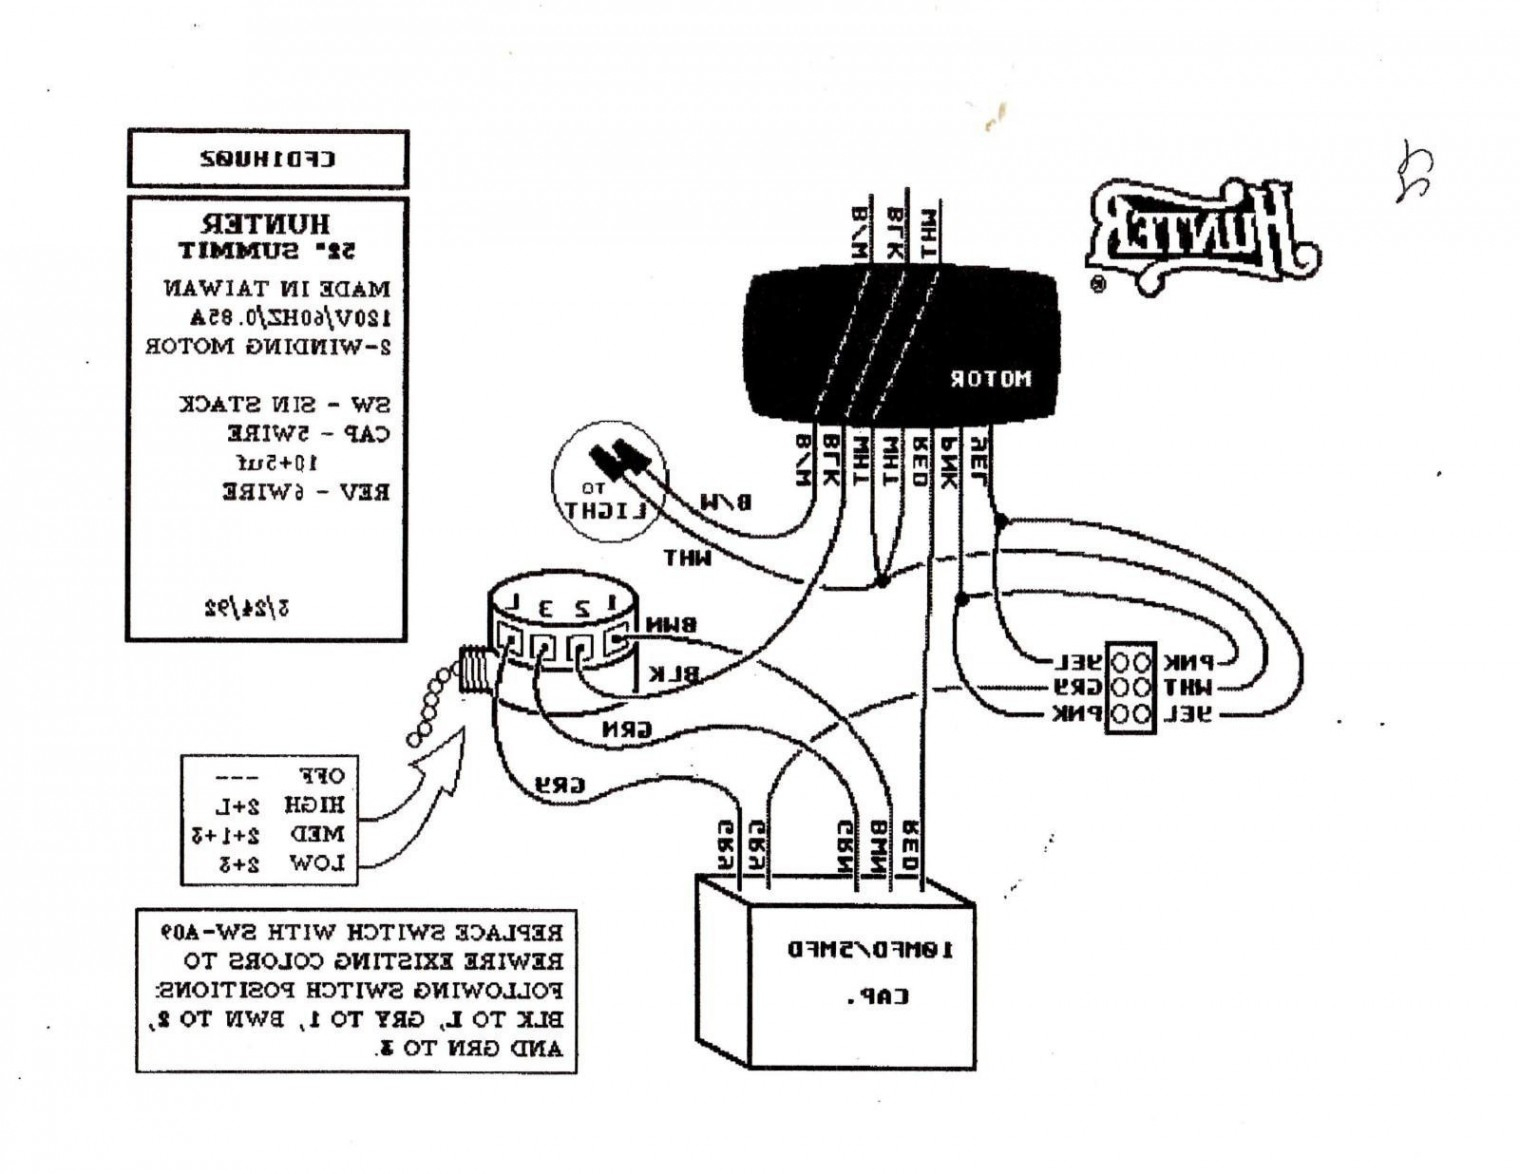 Hampton Bay 3 Speed Ceiling Fan Switch Wiring Diagram Download